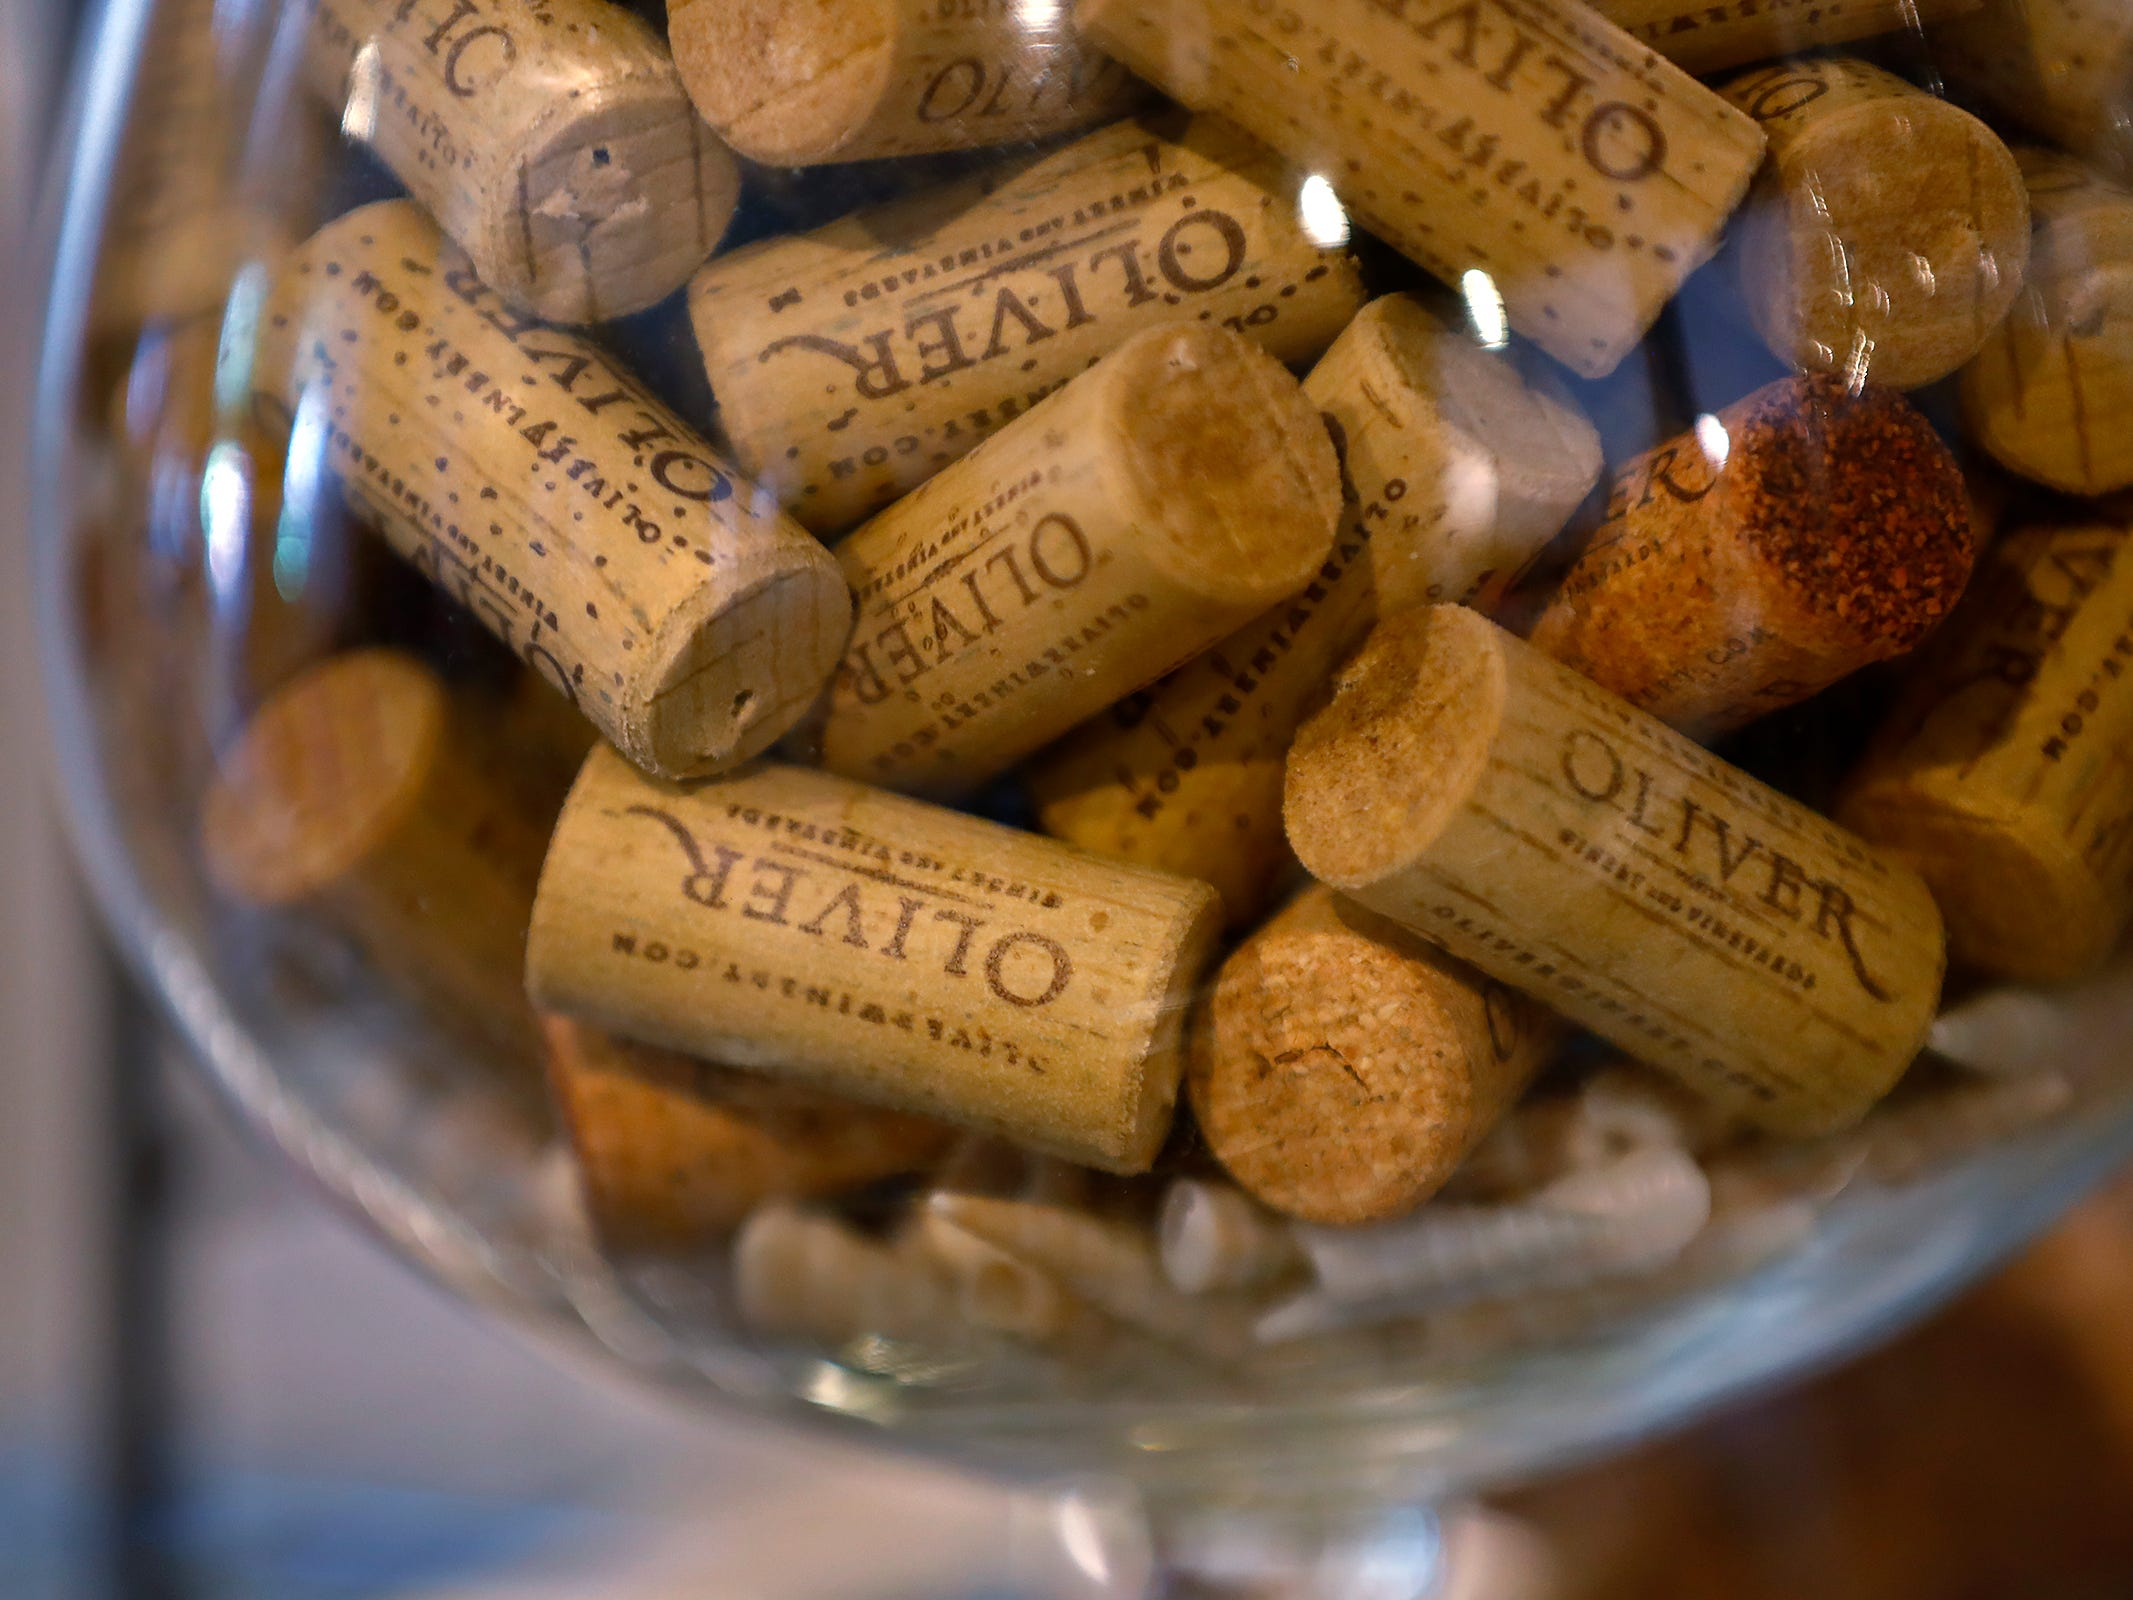 A collection of Oliver Winery corks are seen at ReCraft, Tuesday, Dec. 11, 2018.  The items are among the variety of donated things that can be used in crafting.  ReCraft was born out of Bethany Daugherty's love of crafting and her interest in environmental activism.  At the secondhand craft and hobby store, Daugherty also teaches workshops.  Sustainability and environmentalism are the focus of the store.